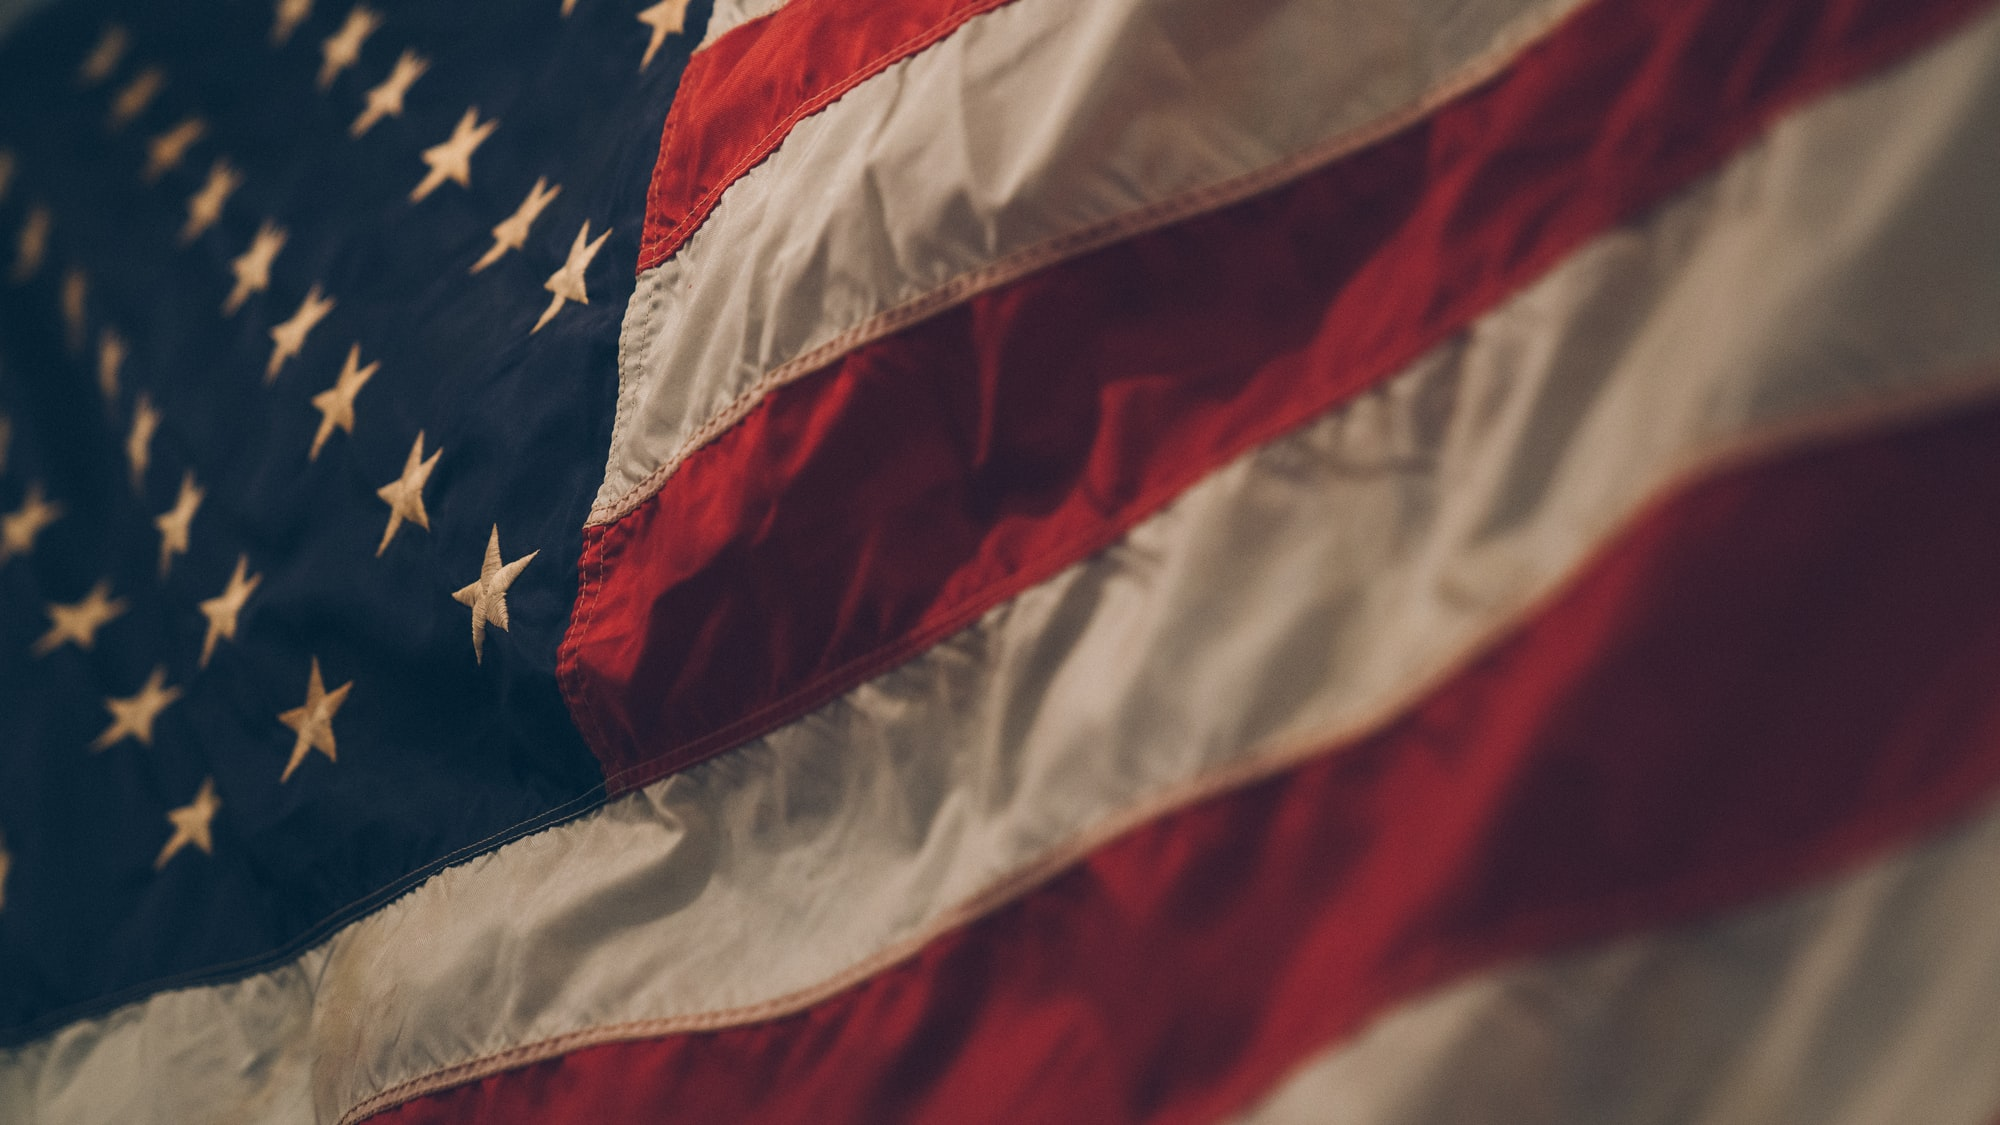 Travel, Nationalism, and American Exceptionalism